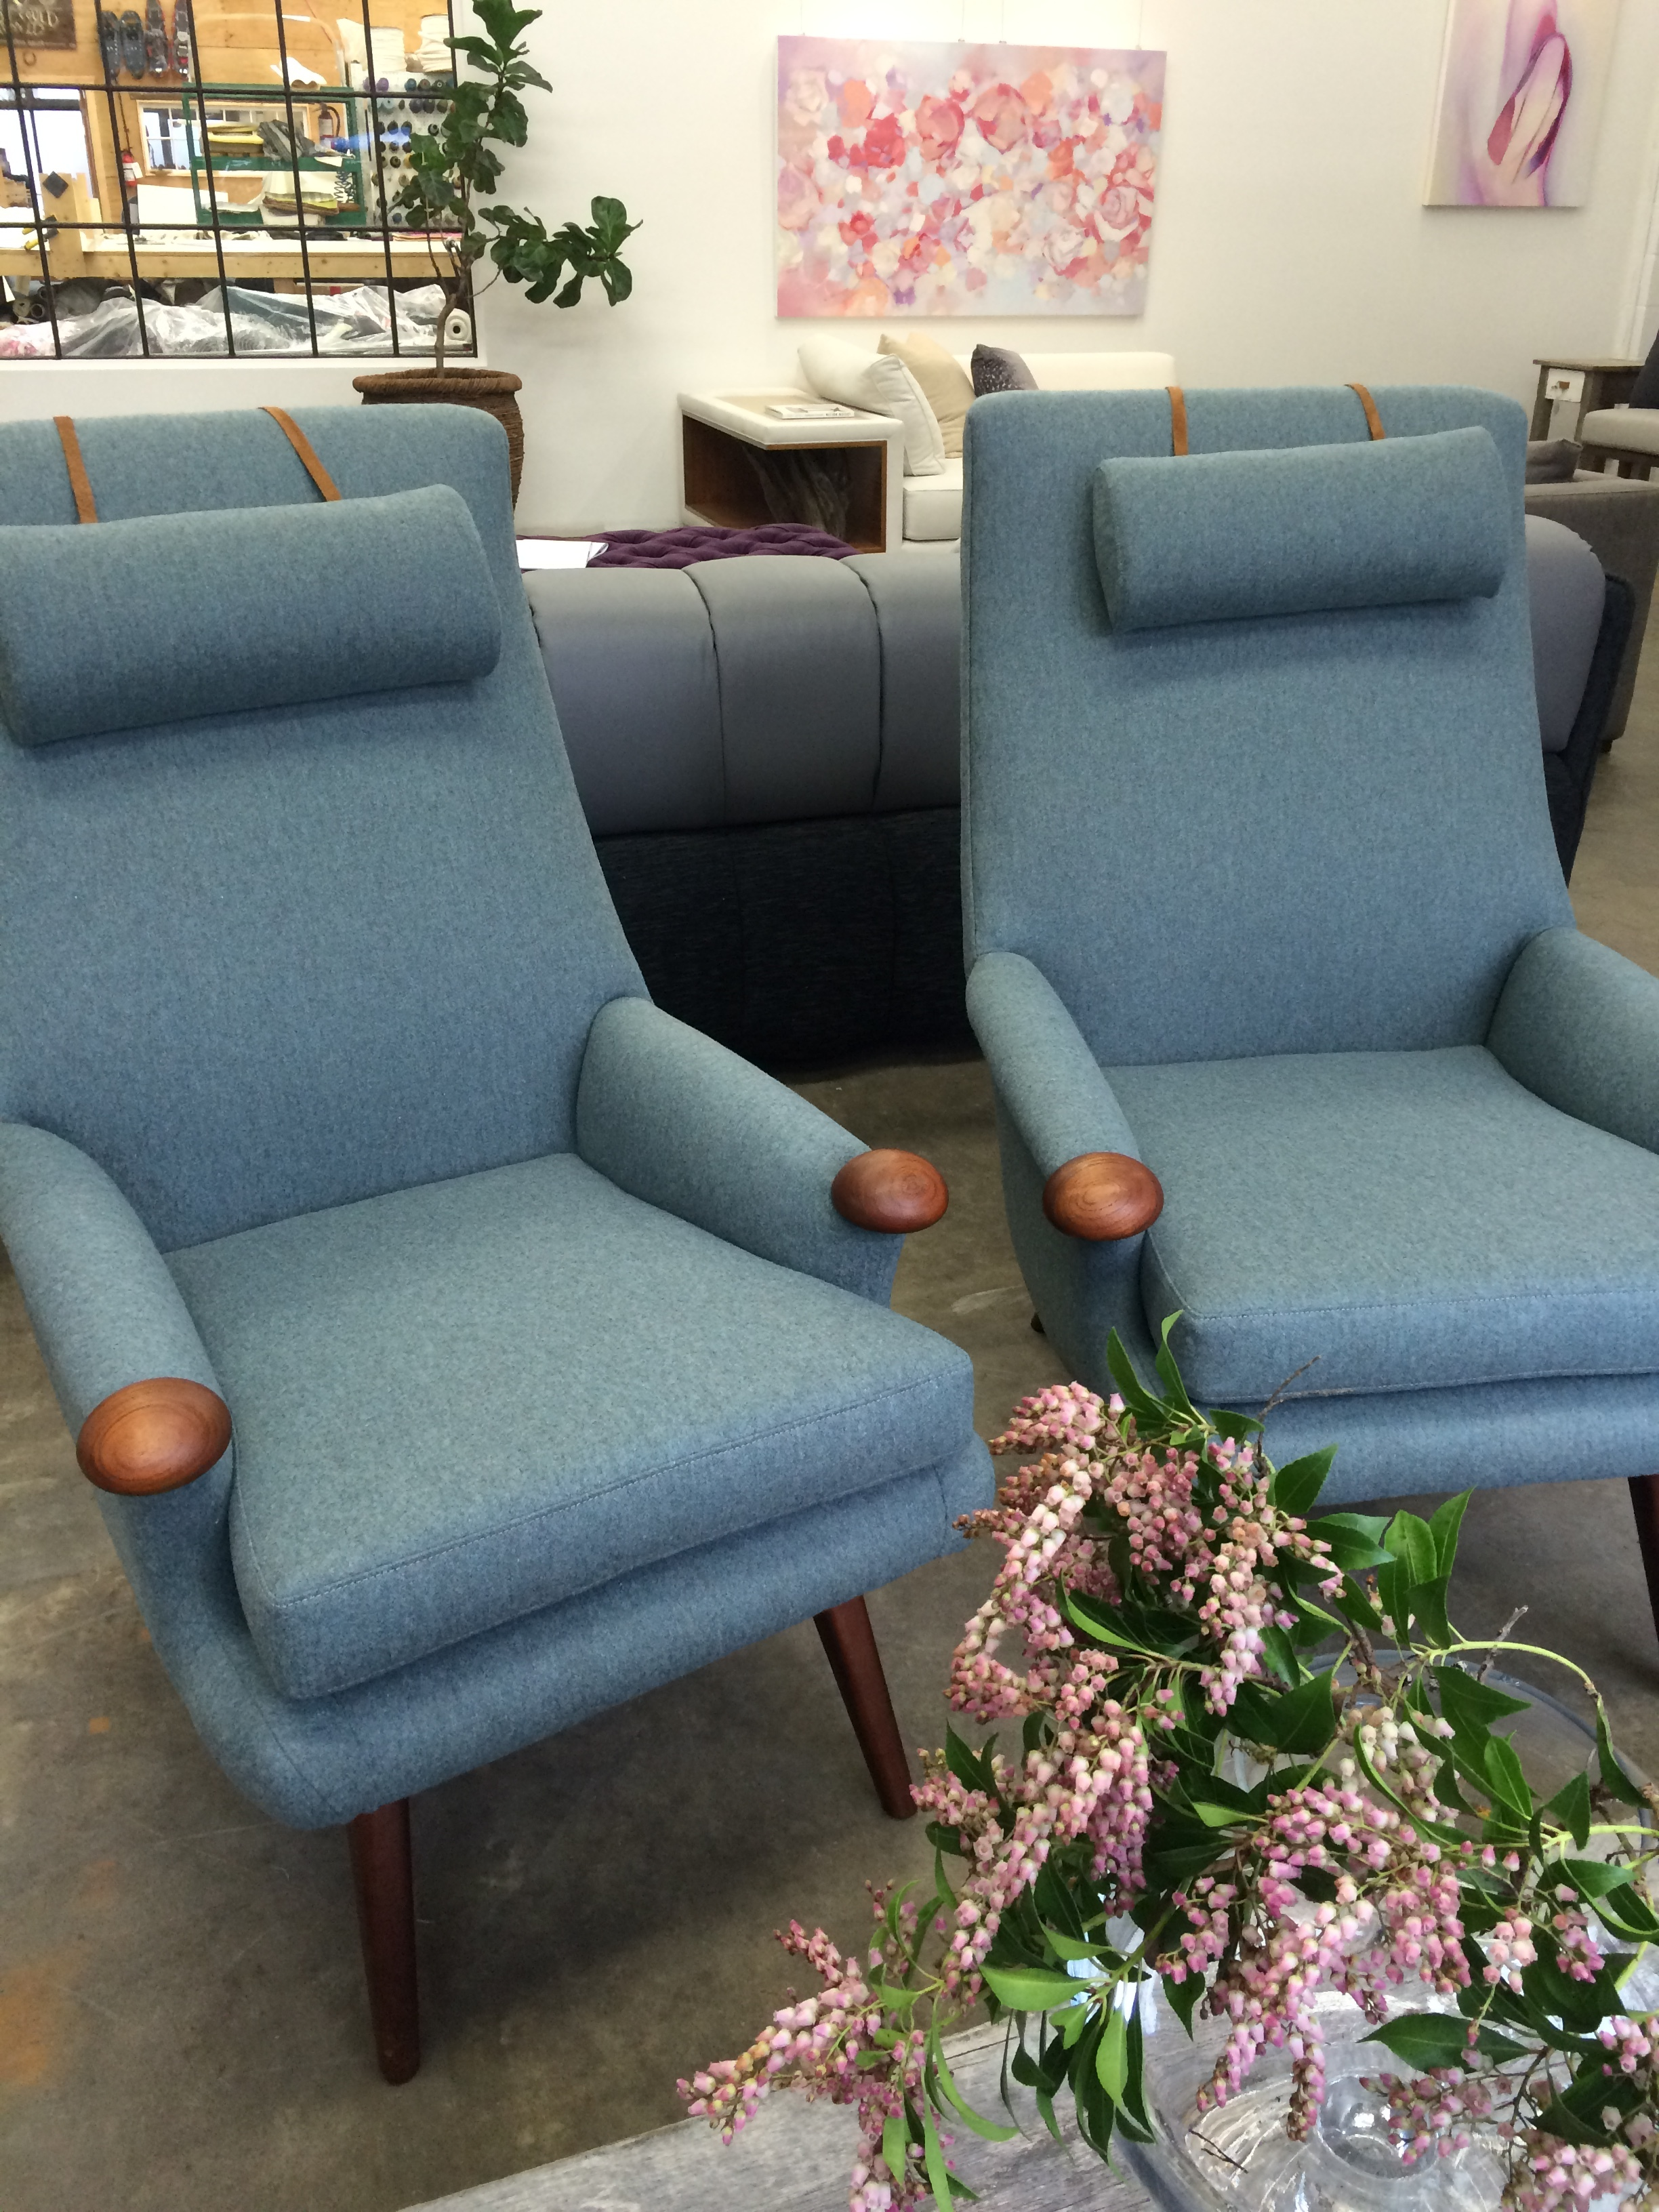 Restored Helmut Krutz armchairs with teak accents, and weighted headrests.